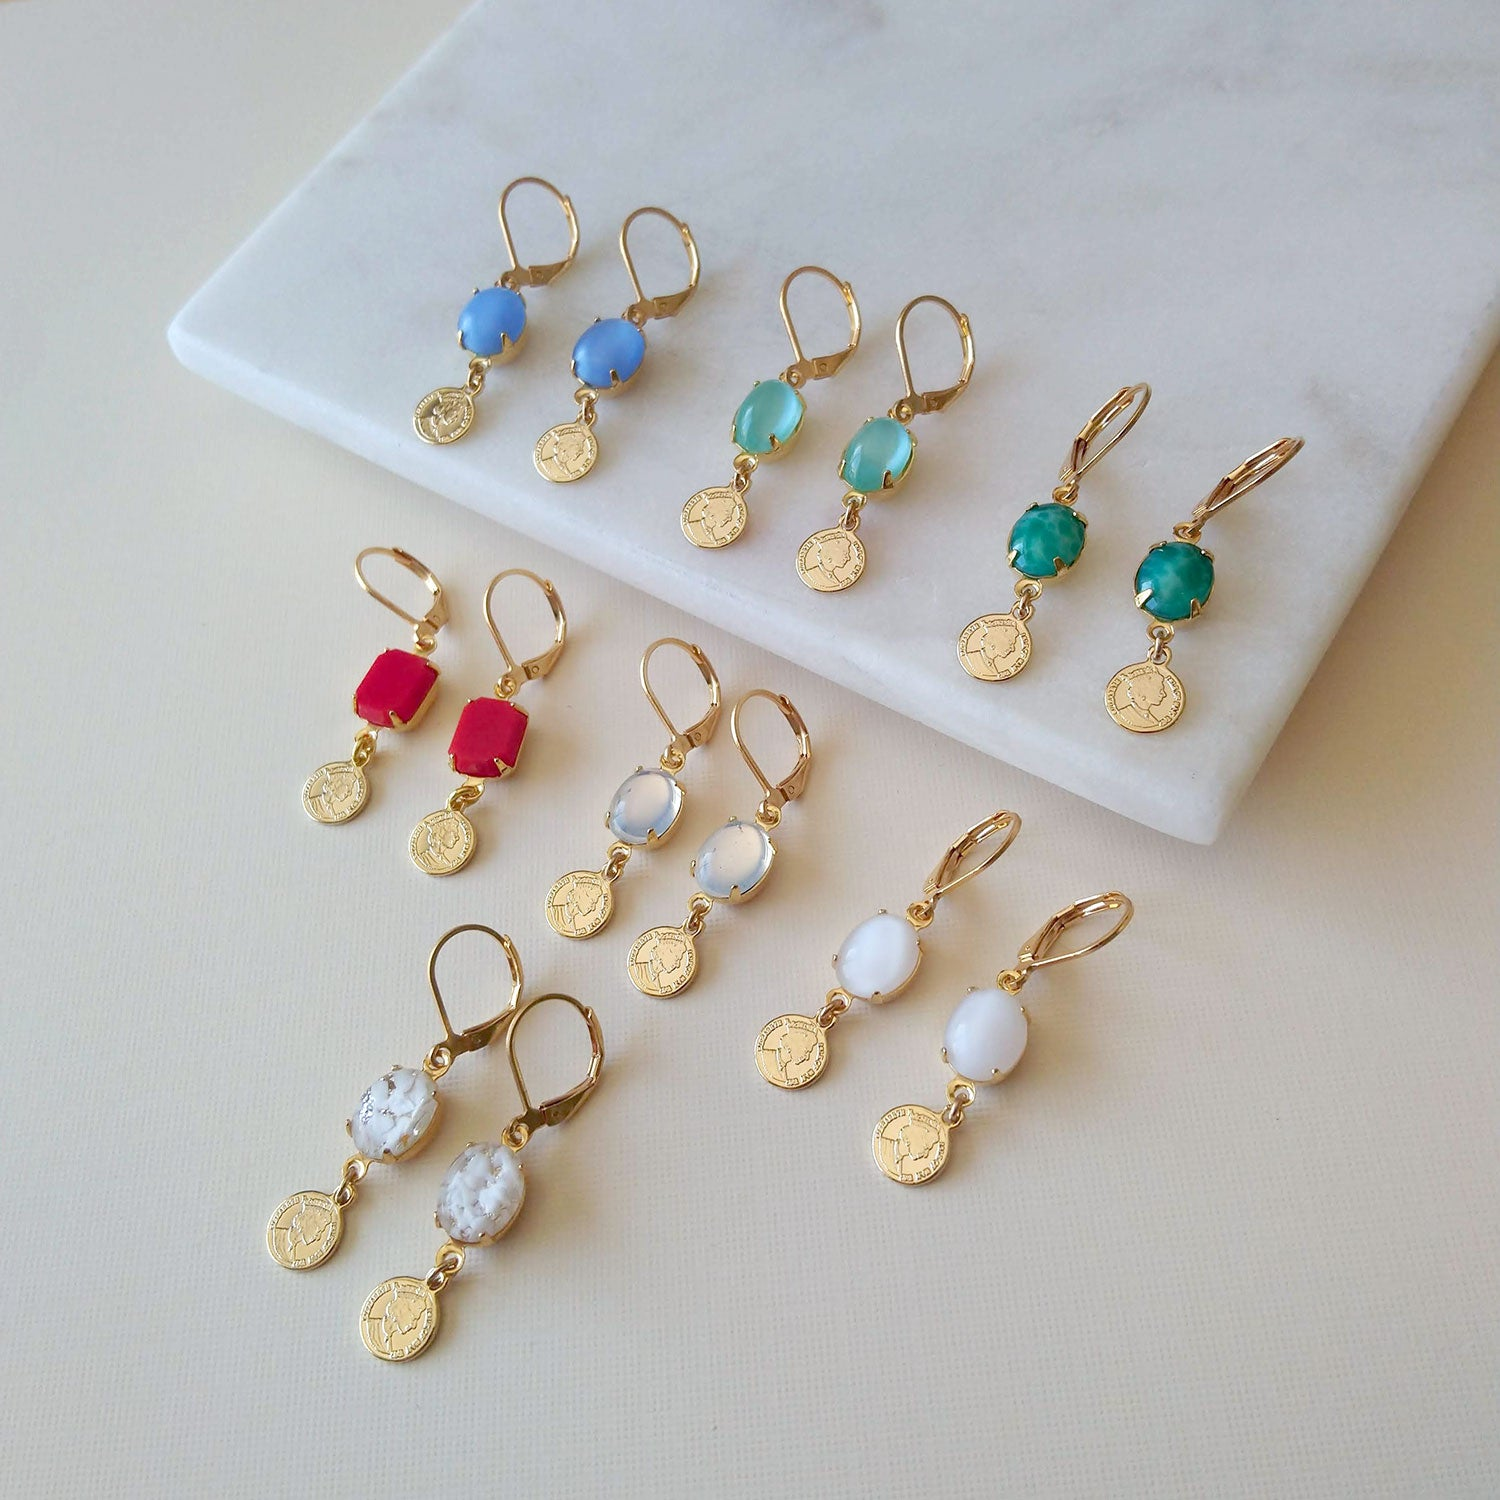 charm earrings in different colors